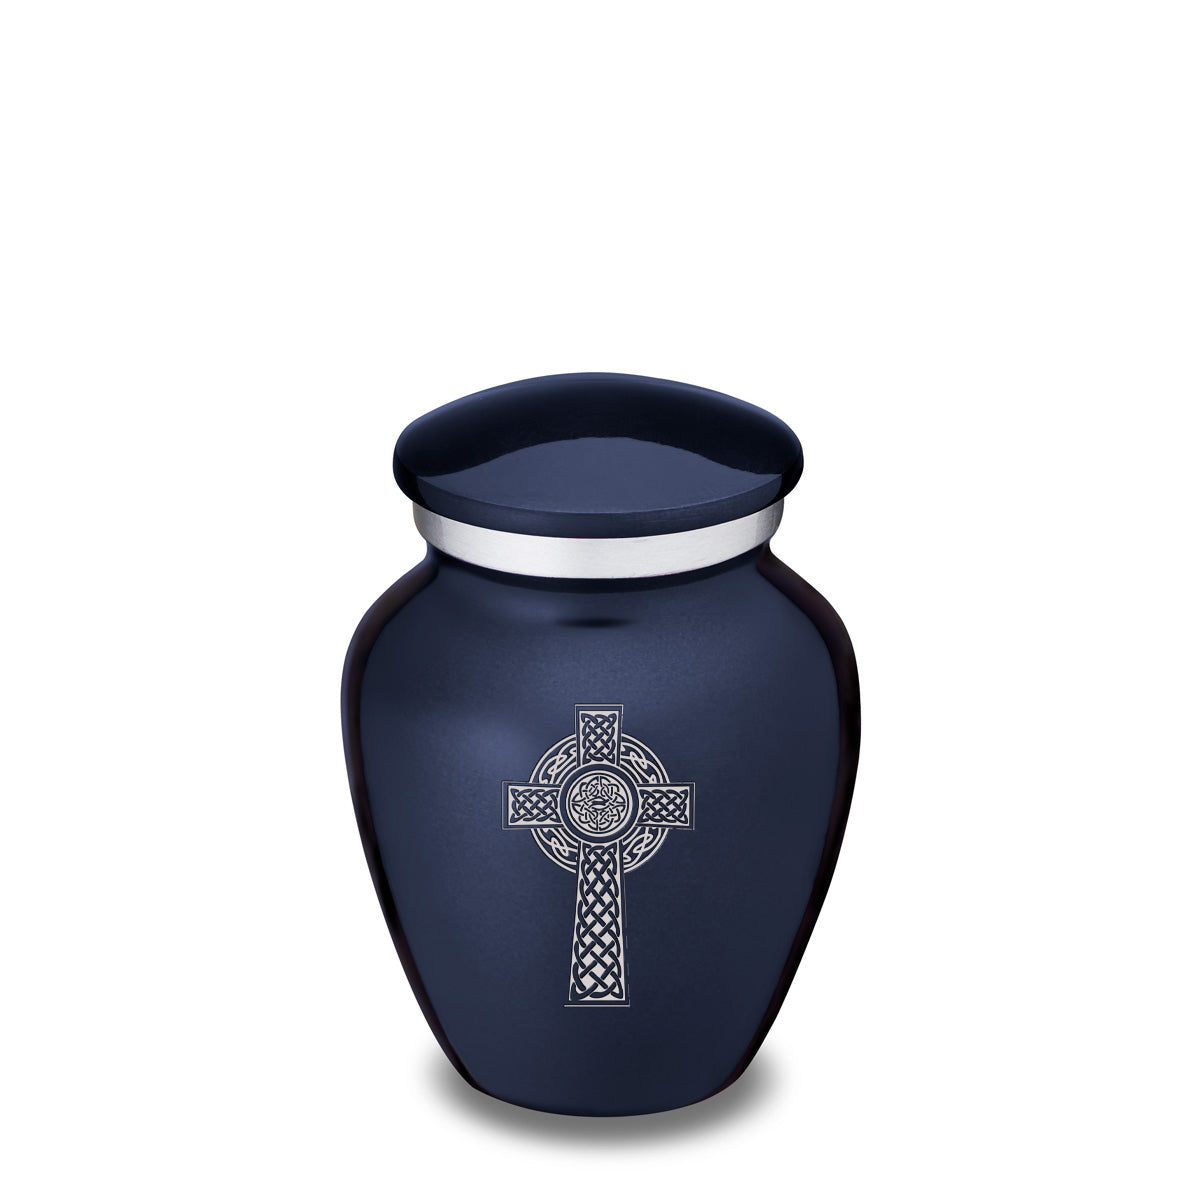 Keepsake Embrace Cobalt Blue Celtic Cross Cremation Urn